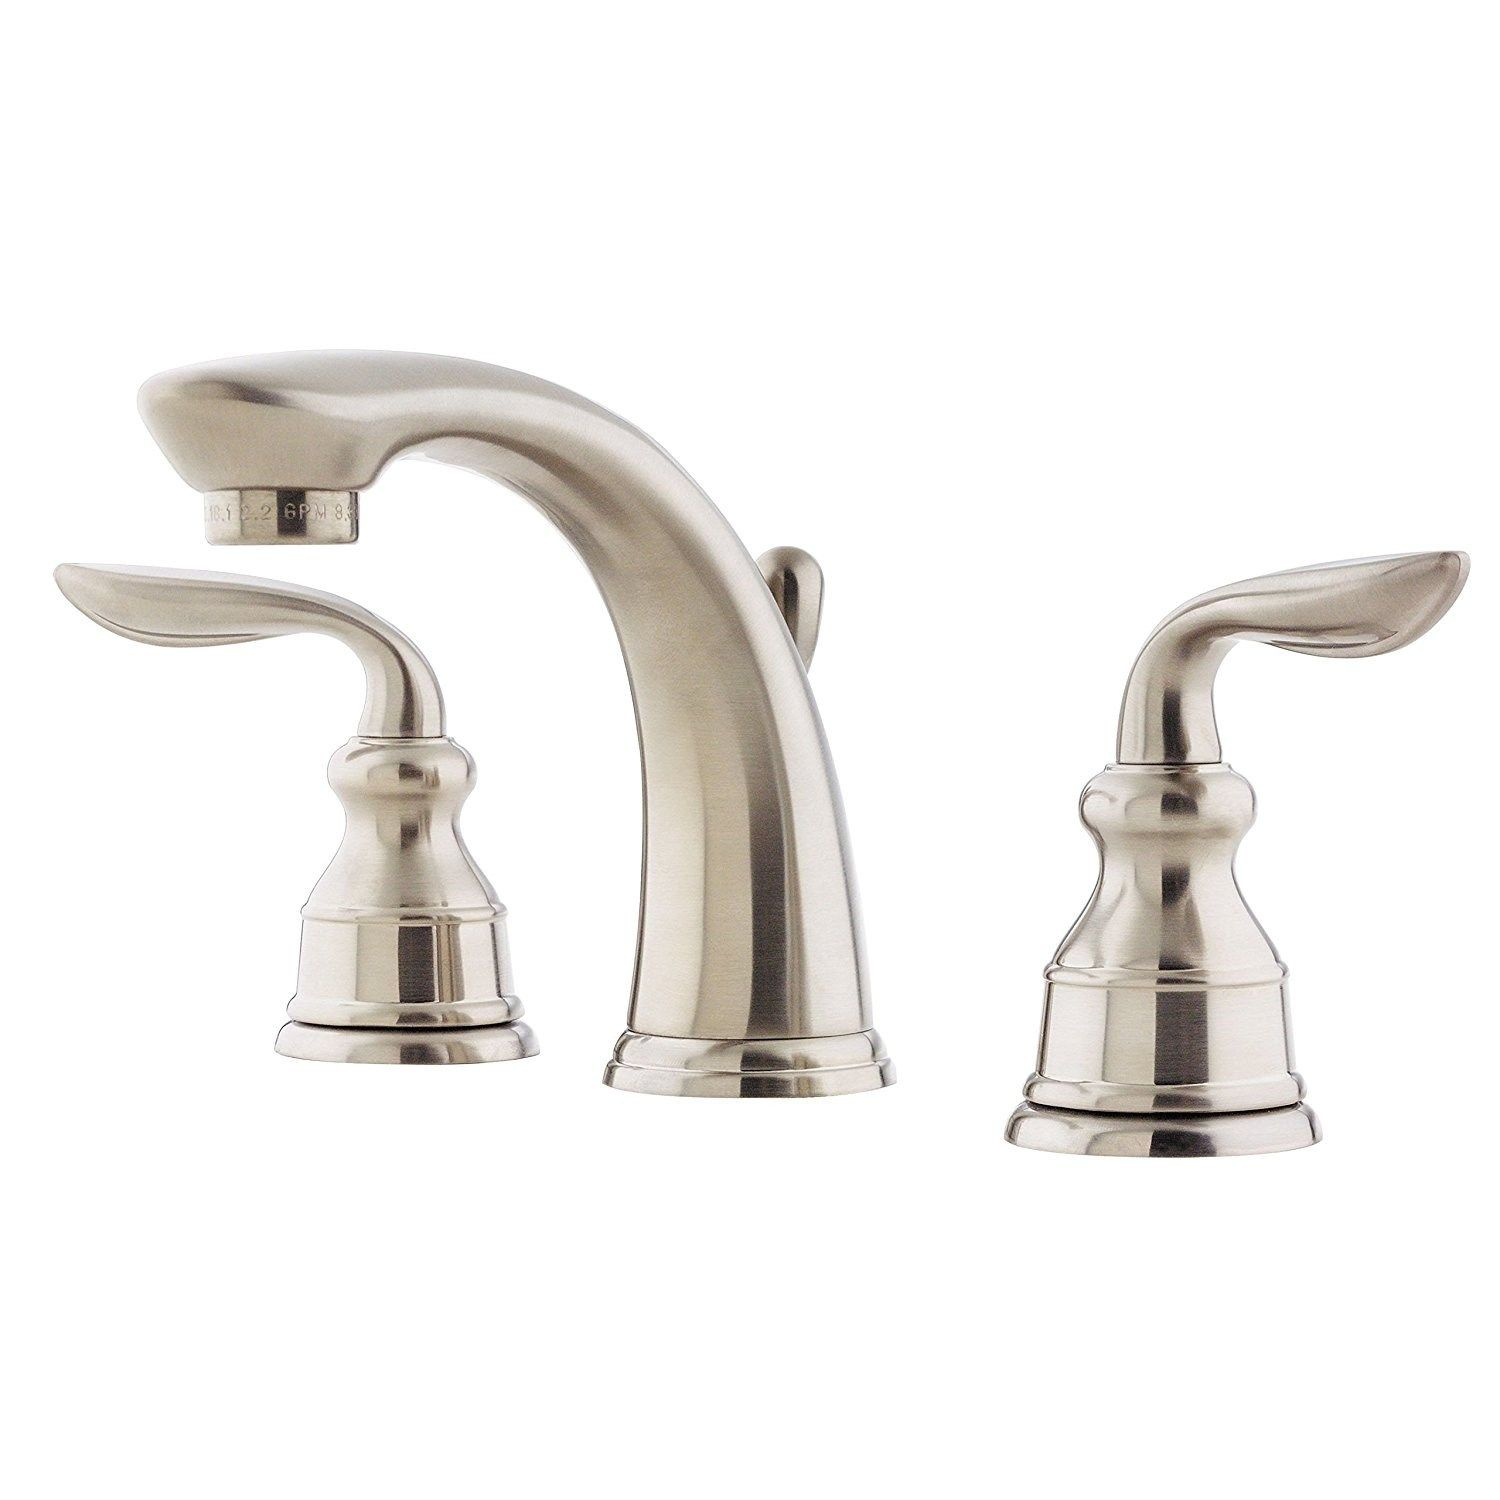 Awesome Pfister Selia Bathroom Faucet Check More At Https - Pfister selia bathroom faucet